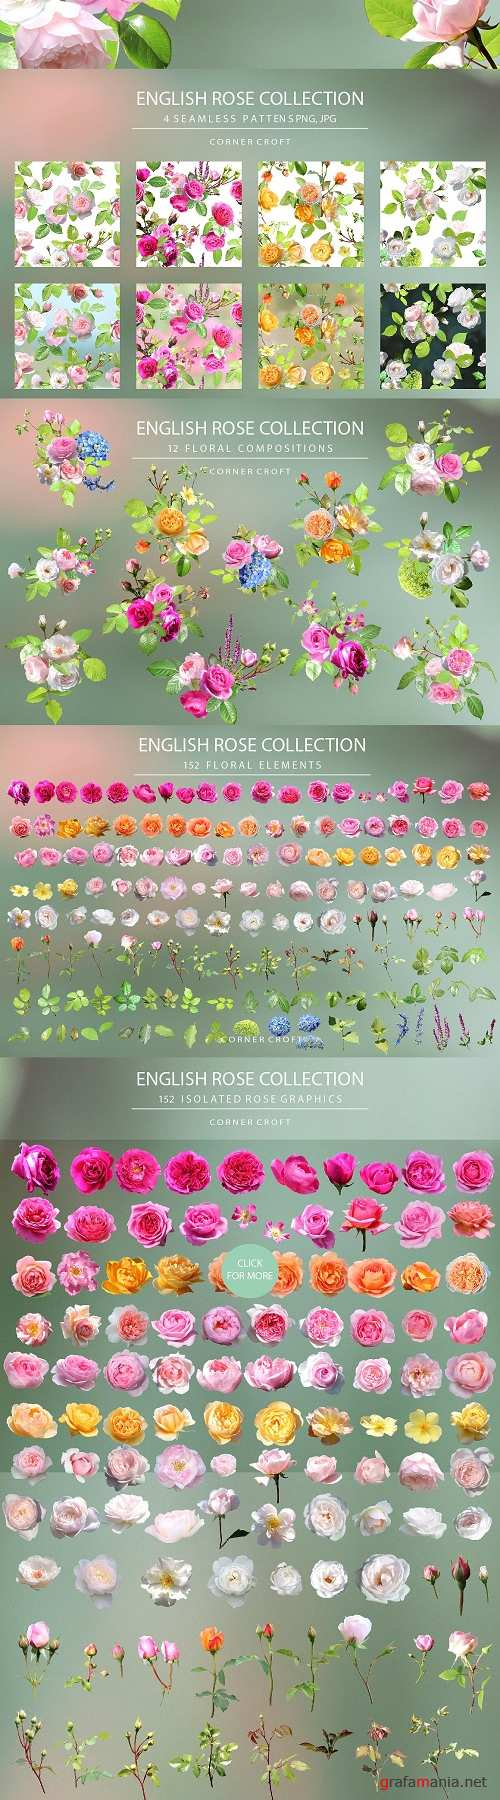 Rose Collection - 2740421